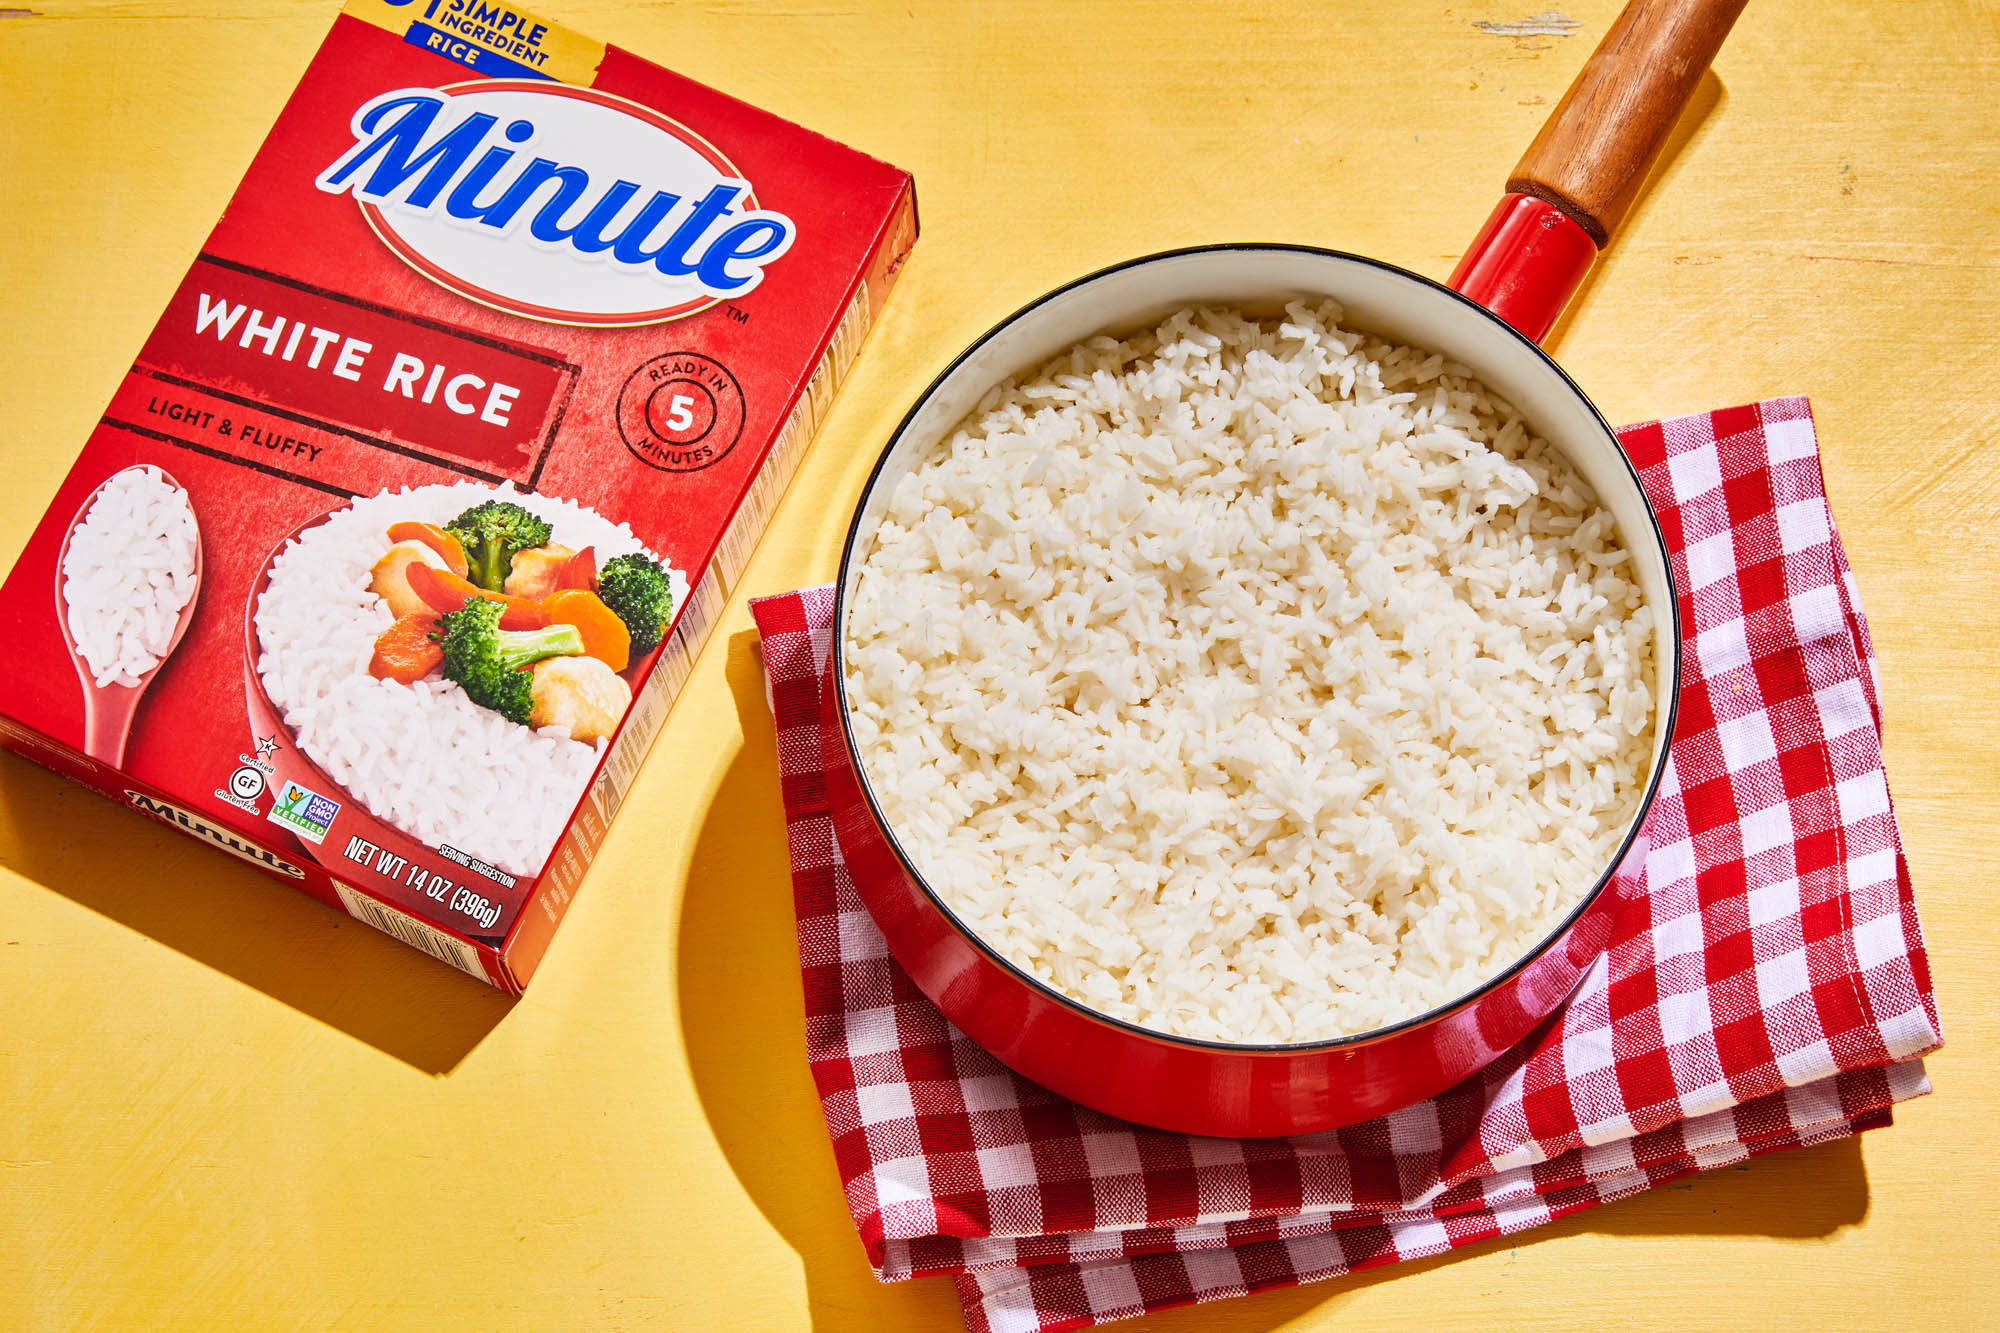 Pot of prepared minute rice and red minute rice box